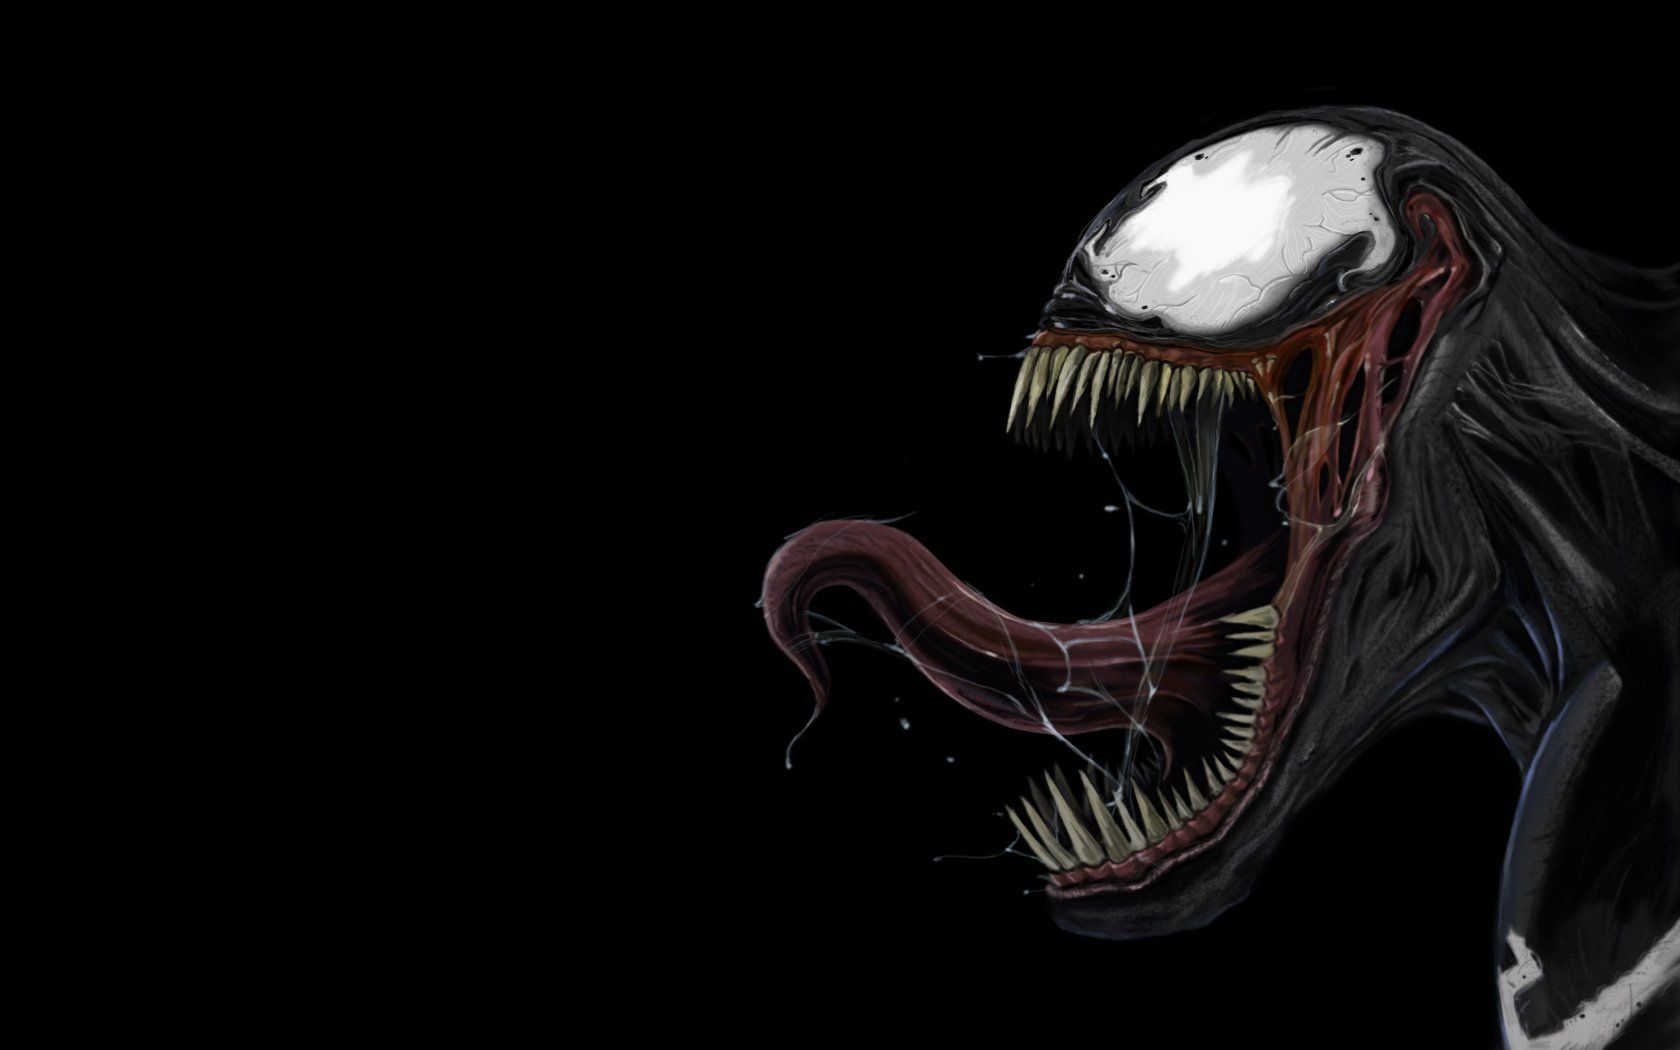 Spiderman venom wallpaper art wallpapers pinterest